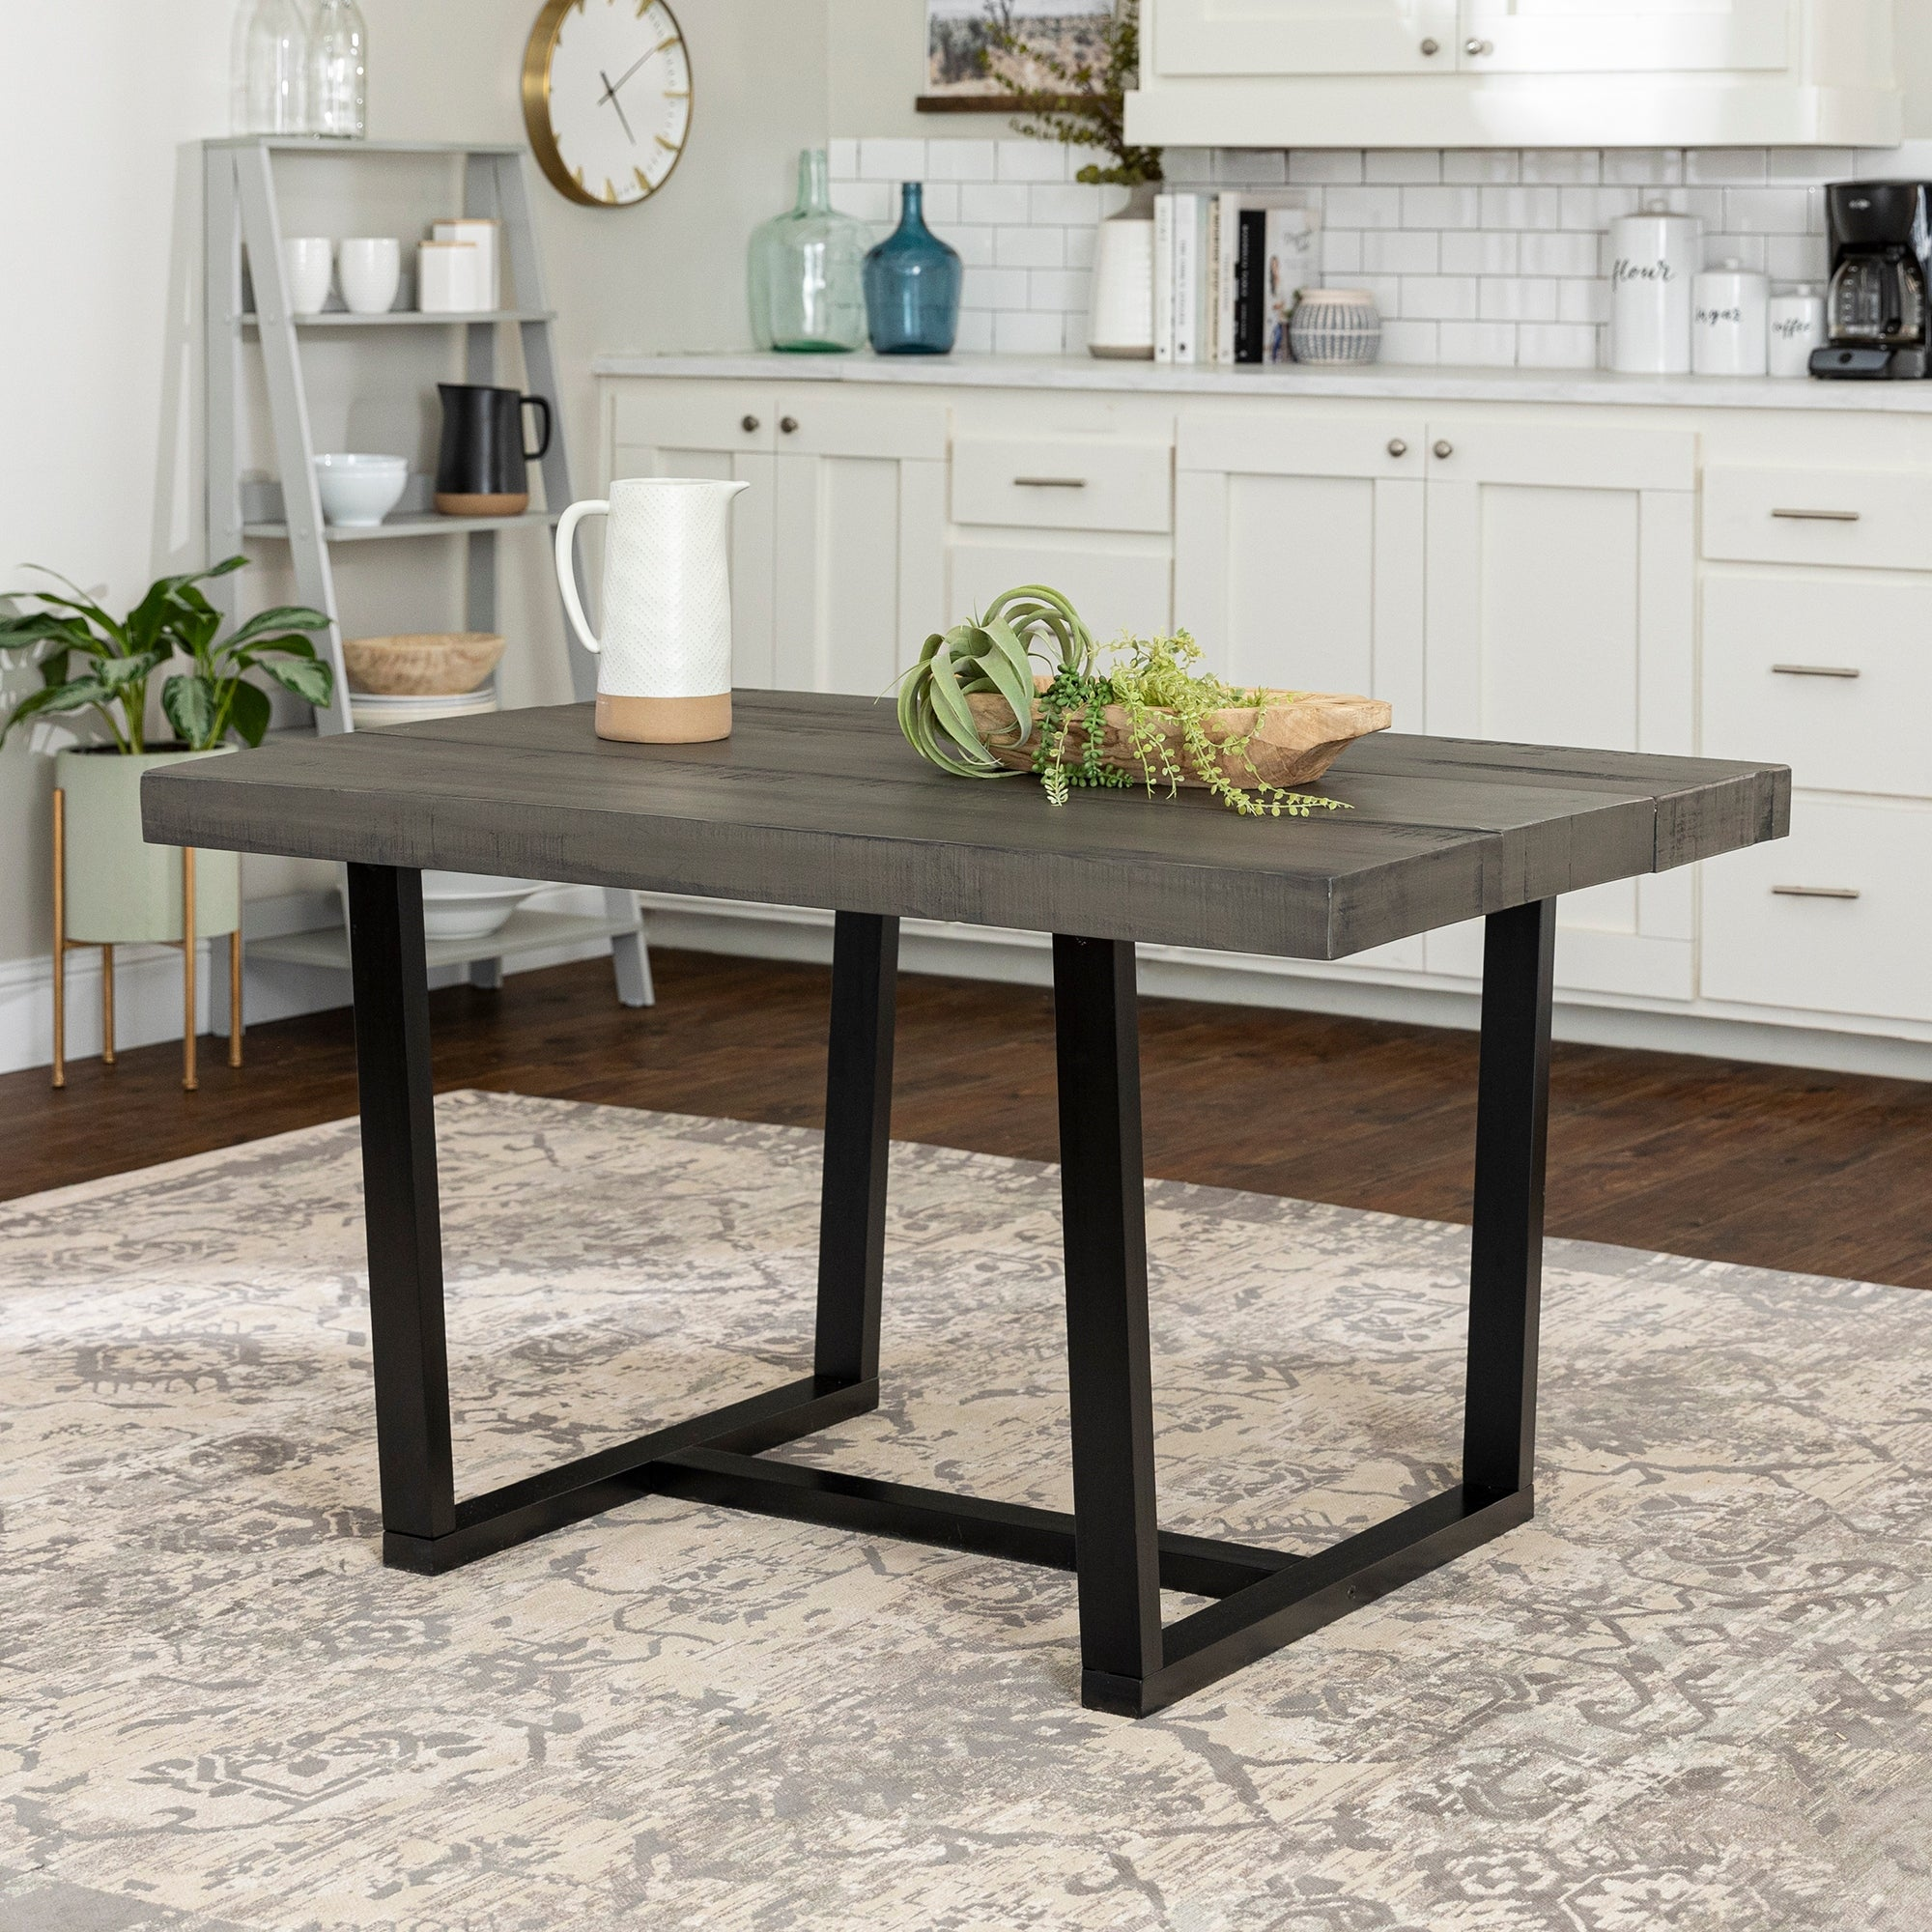 Picture of: Carbon Loft 52 Inch Distressed Wood Dining Table On Sale Overstock 28274681